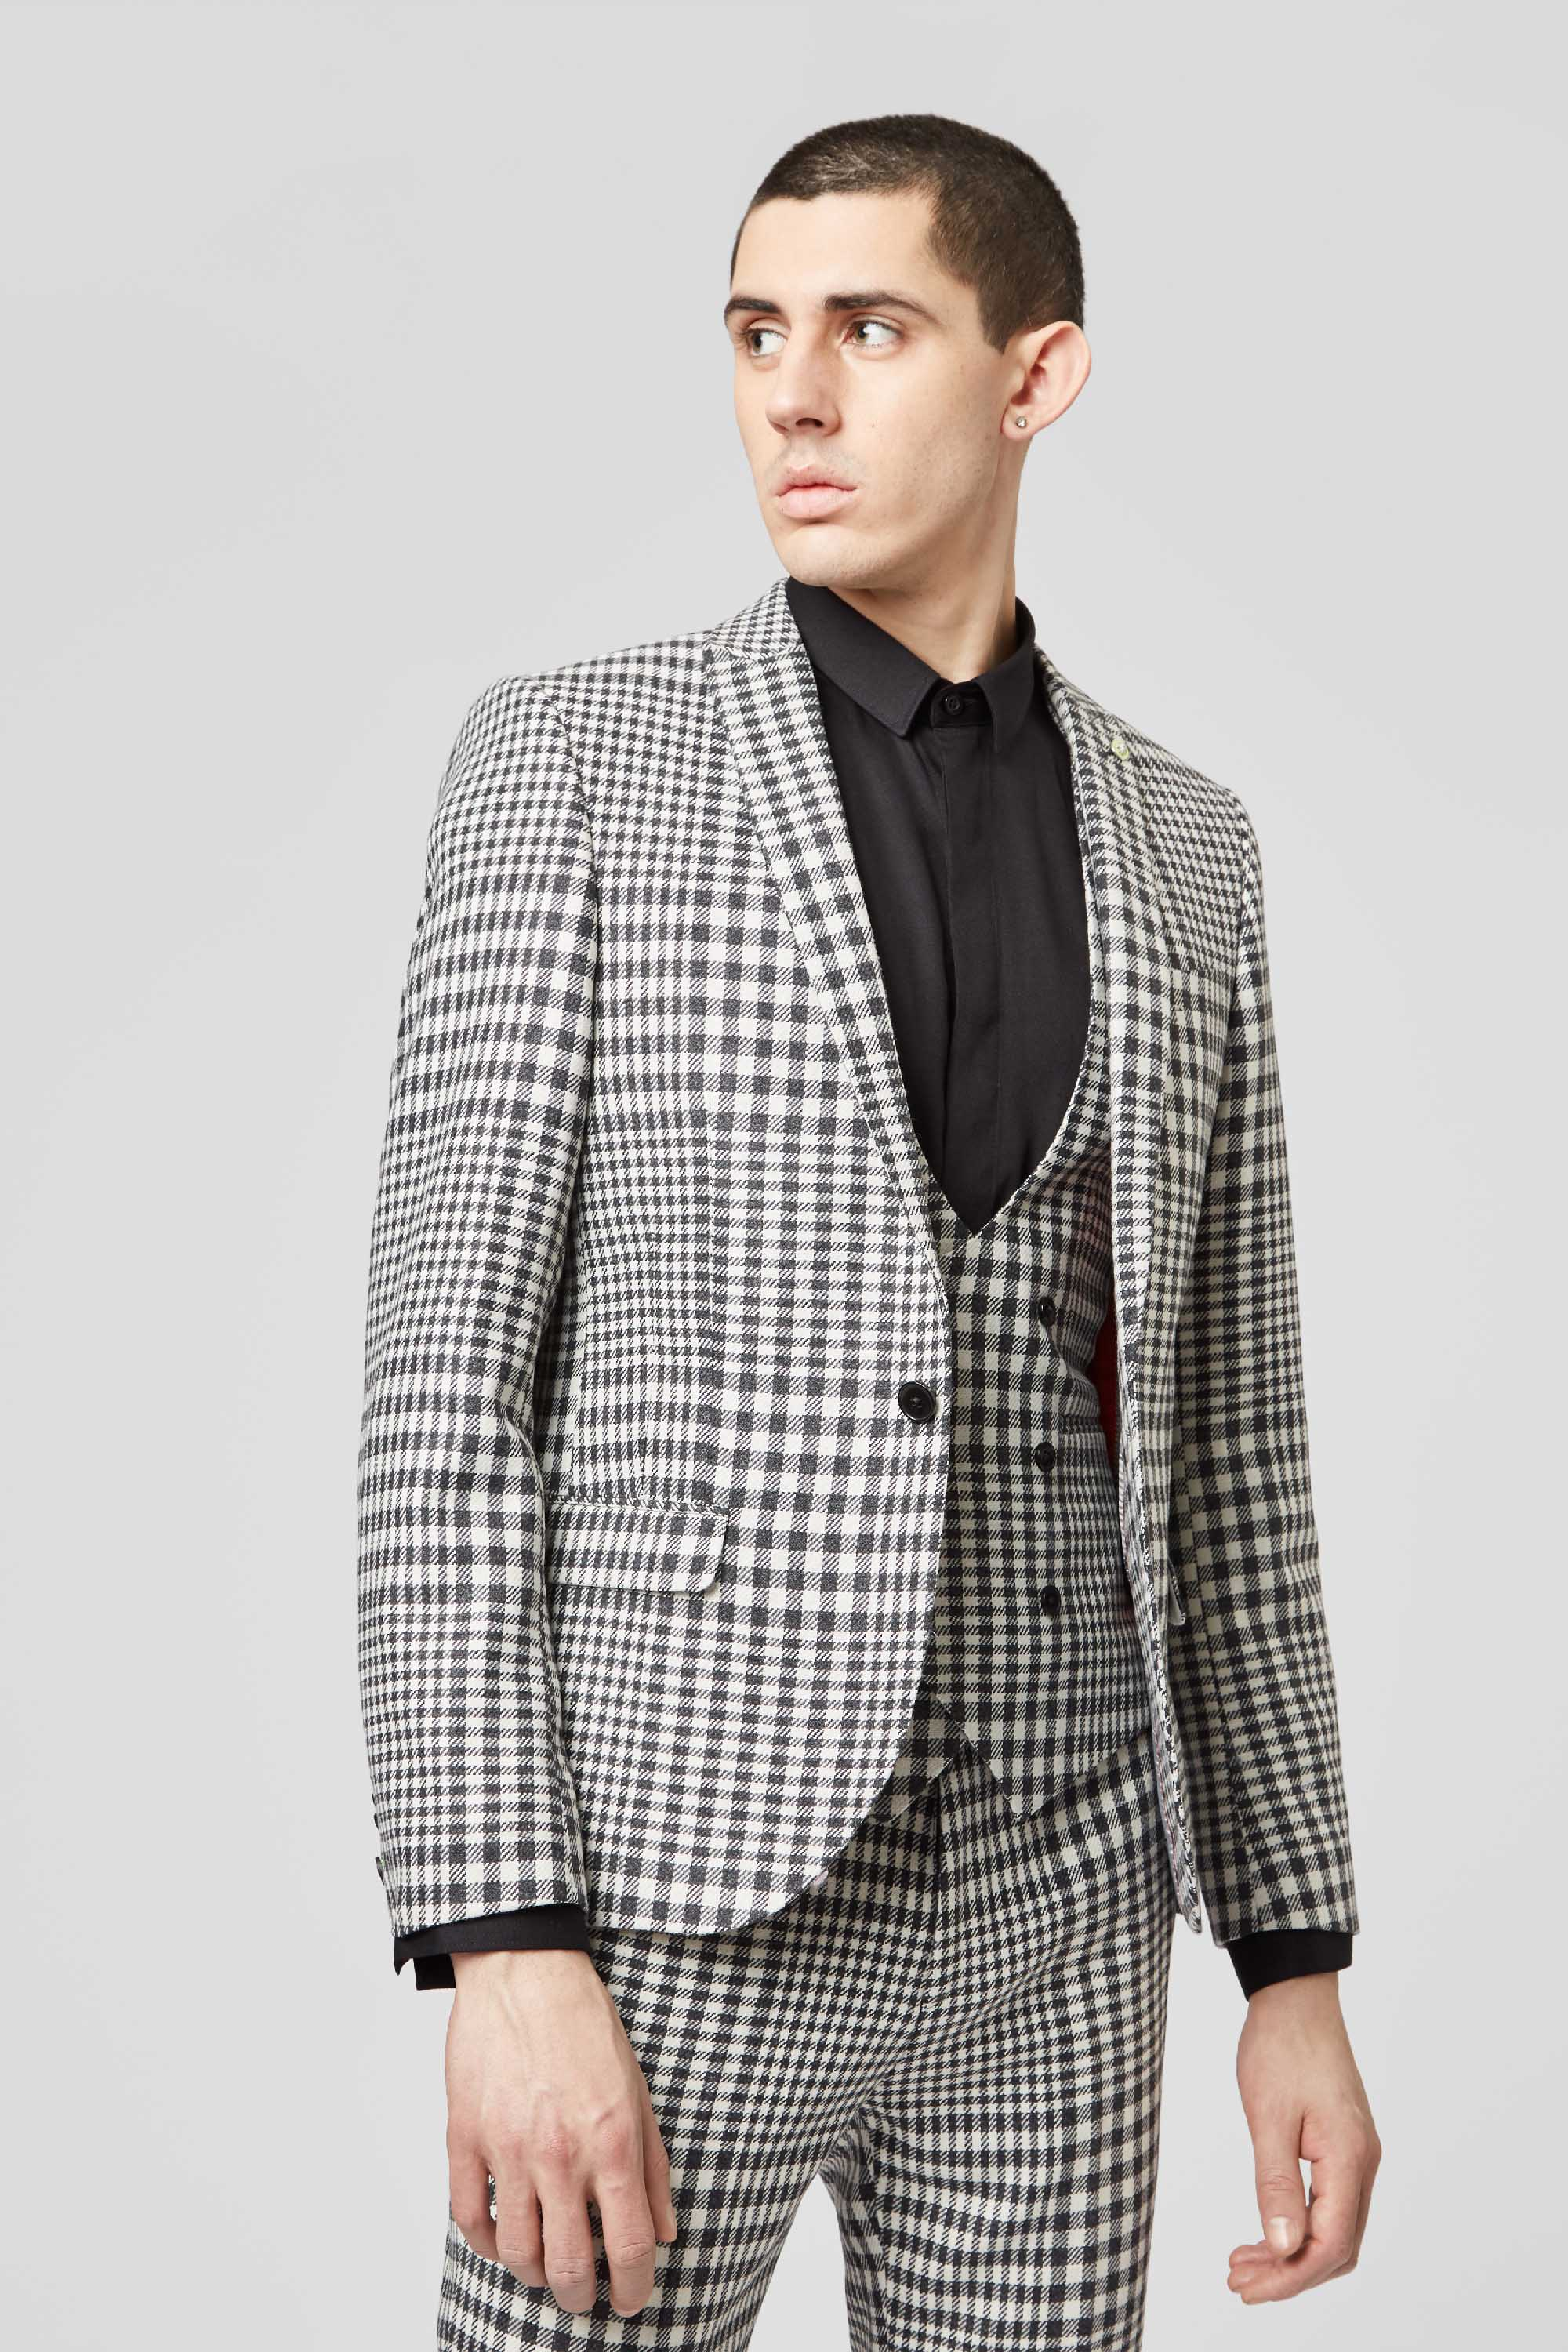 PAGLIA SKINNY FIT BLACK AND WHITE GINGHAM SUIT JACKET